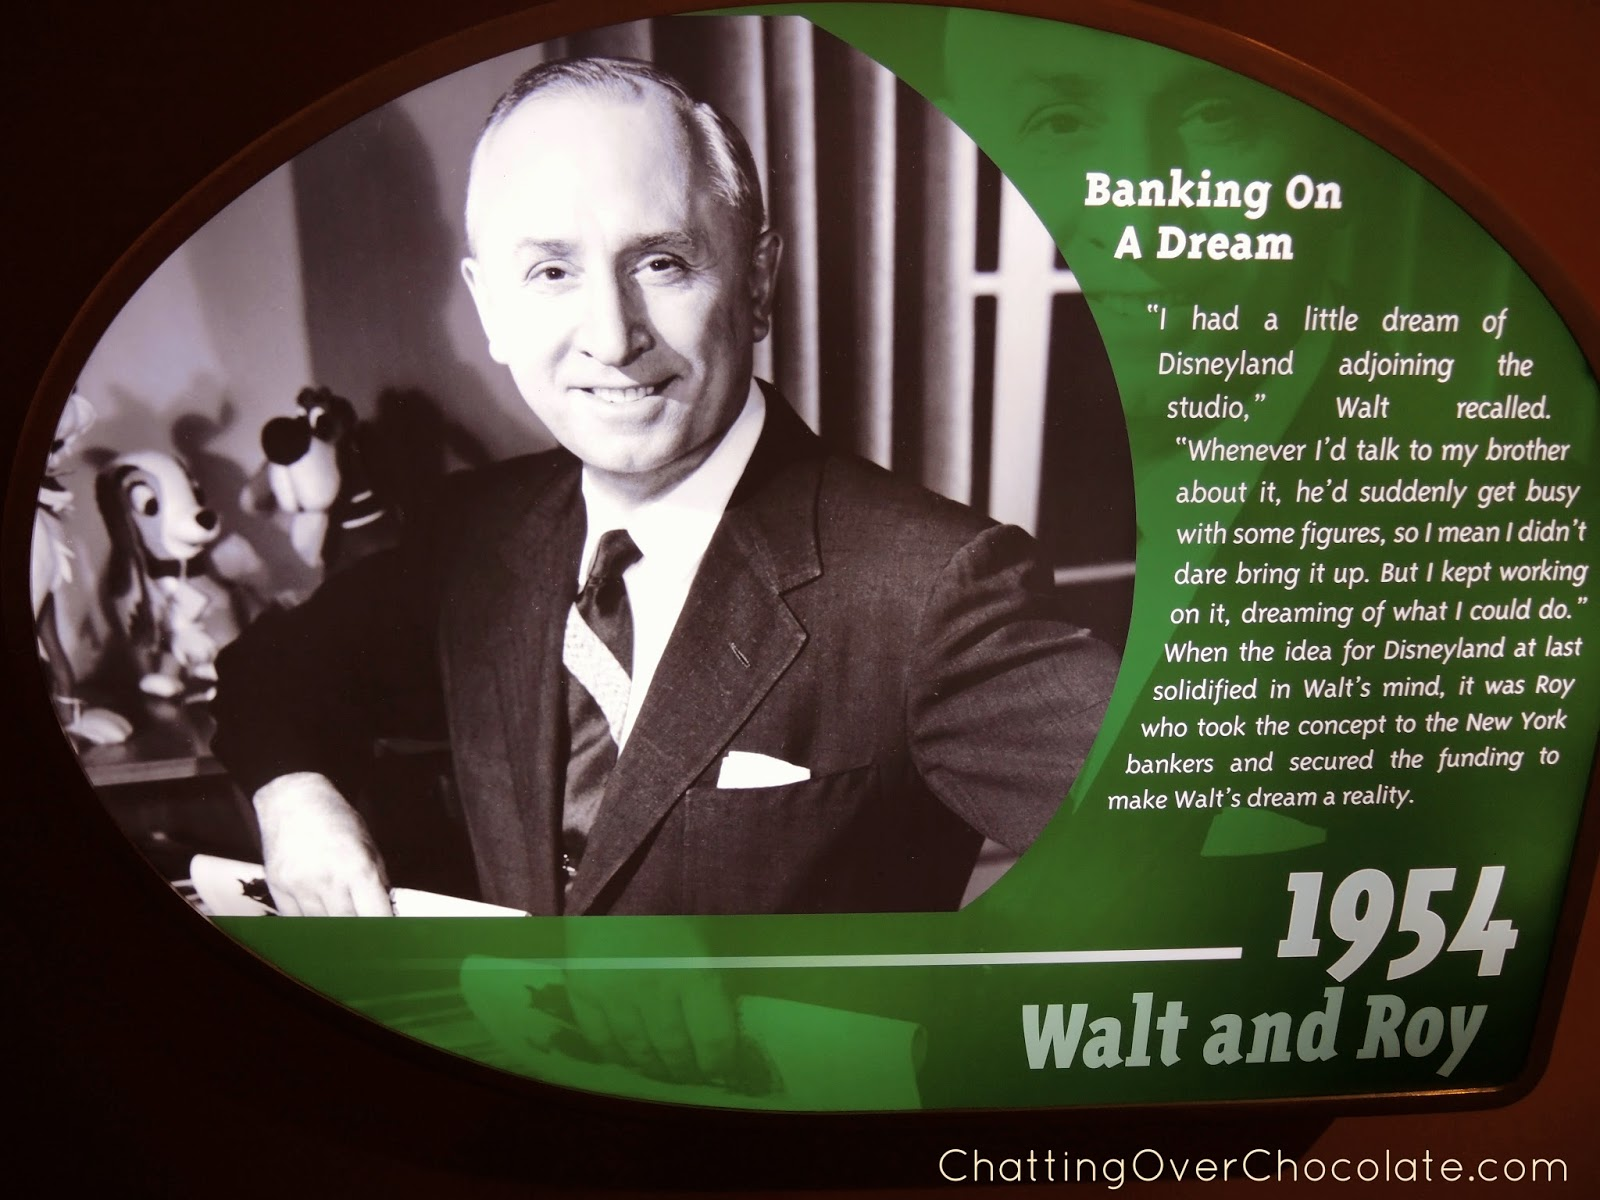 Chatting Over Chocolate: Walt Disney: One Man's Dream